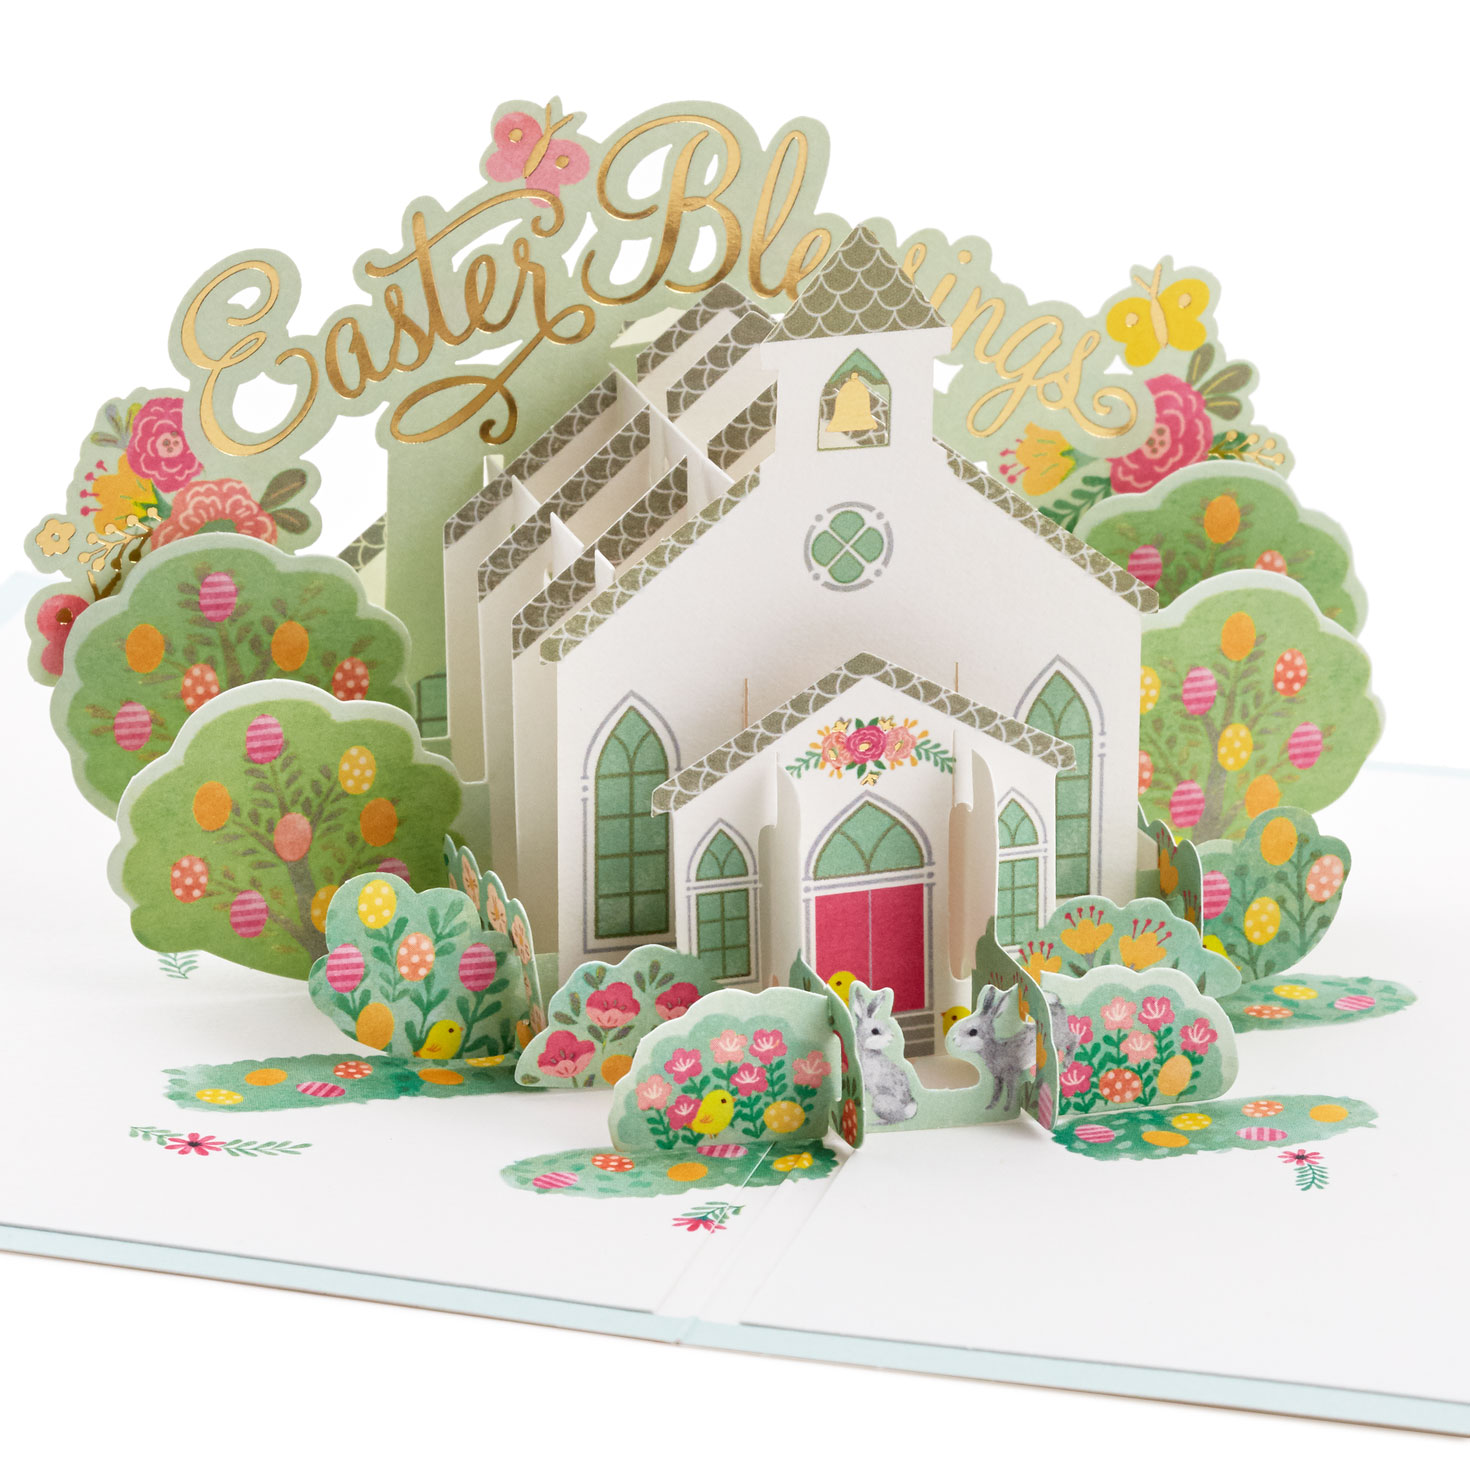 Ships Free! Details about  /New Hallmark Signature Easter Card